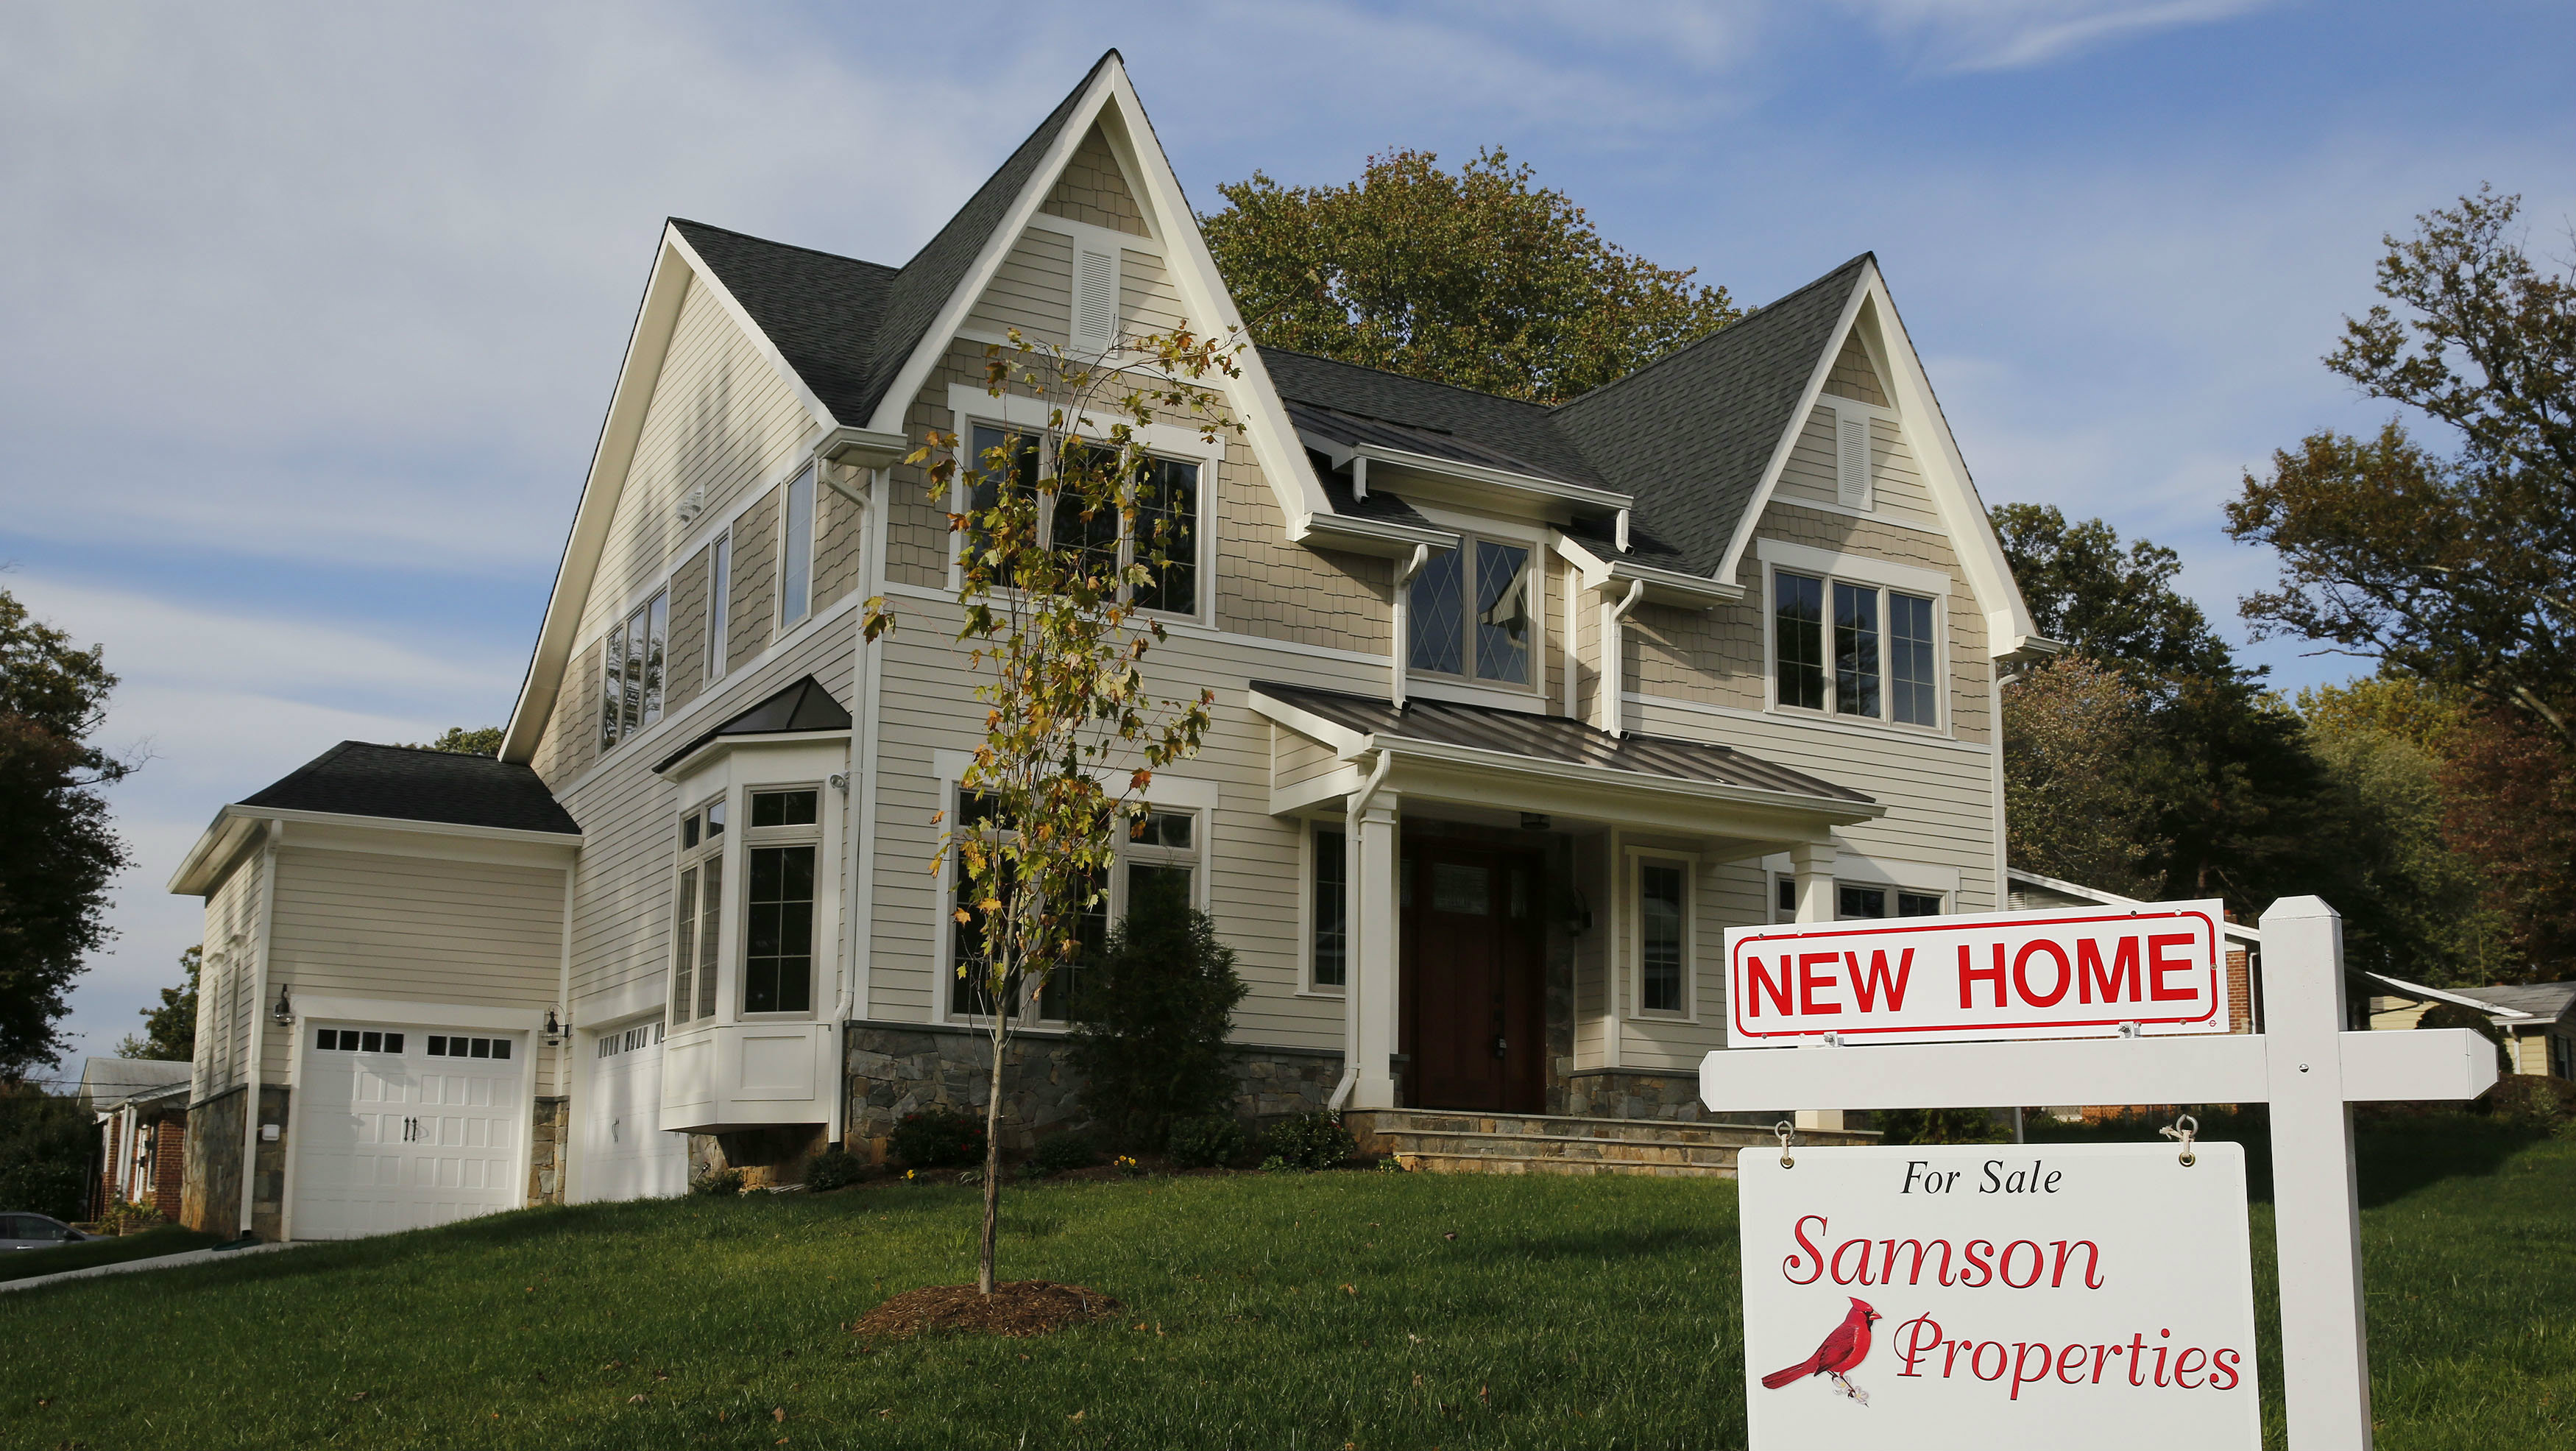 A real estate sign advertising a new home for sale is pictured in Vienna, Virginia, US